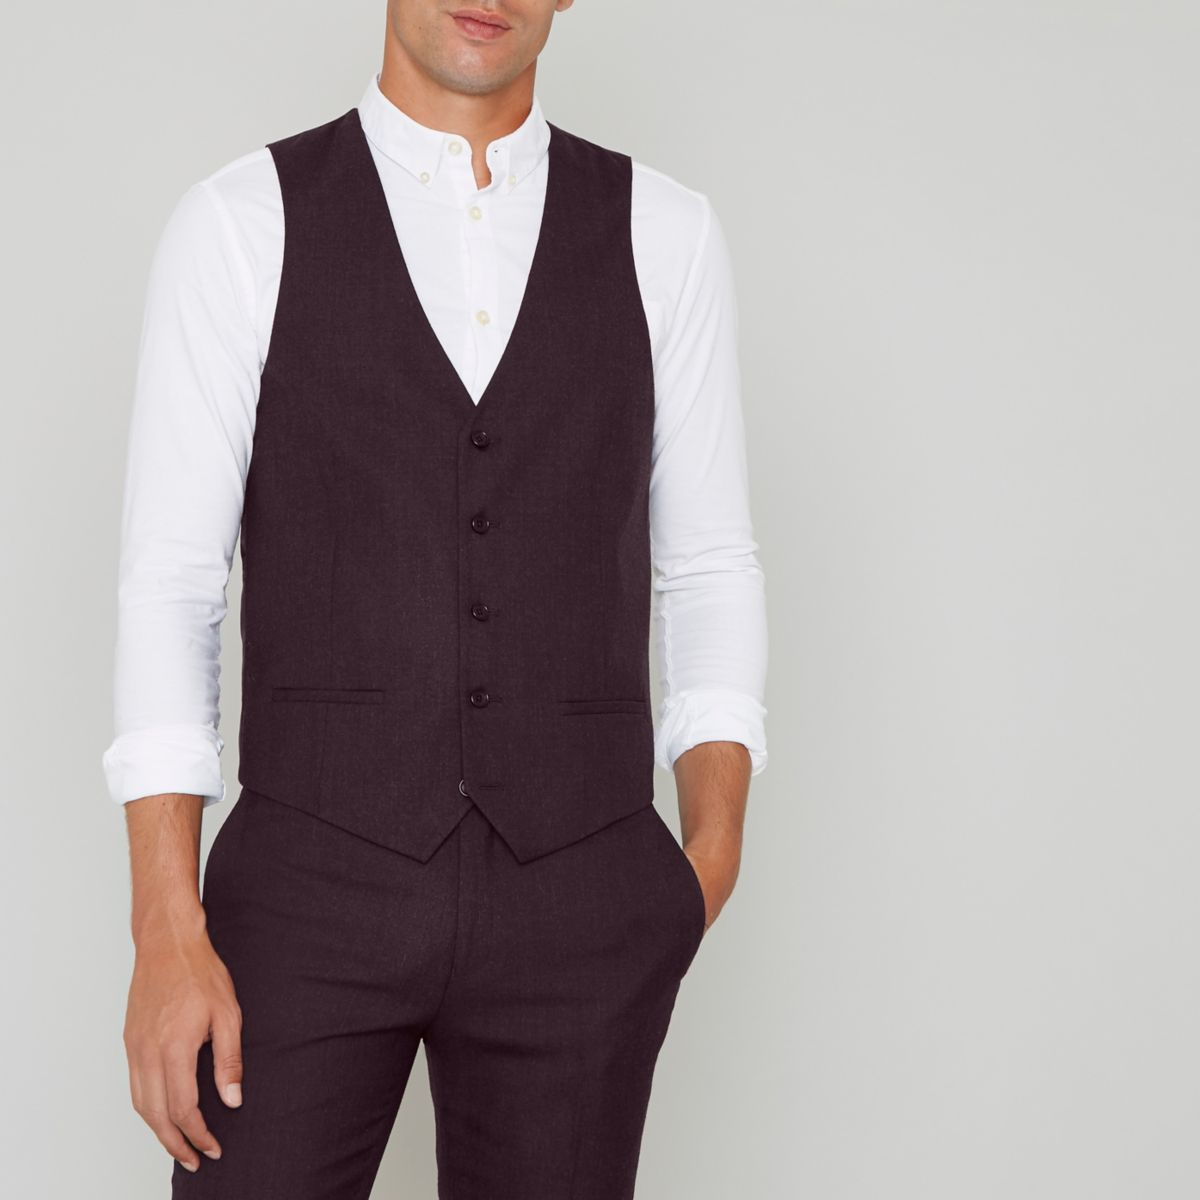 Burgundy wool blend suit vest